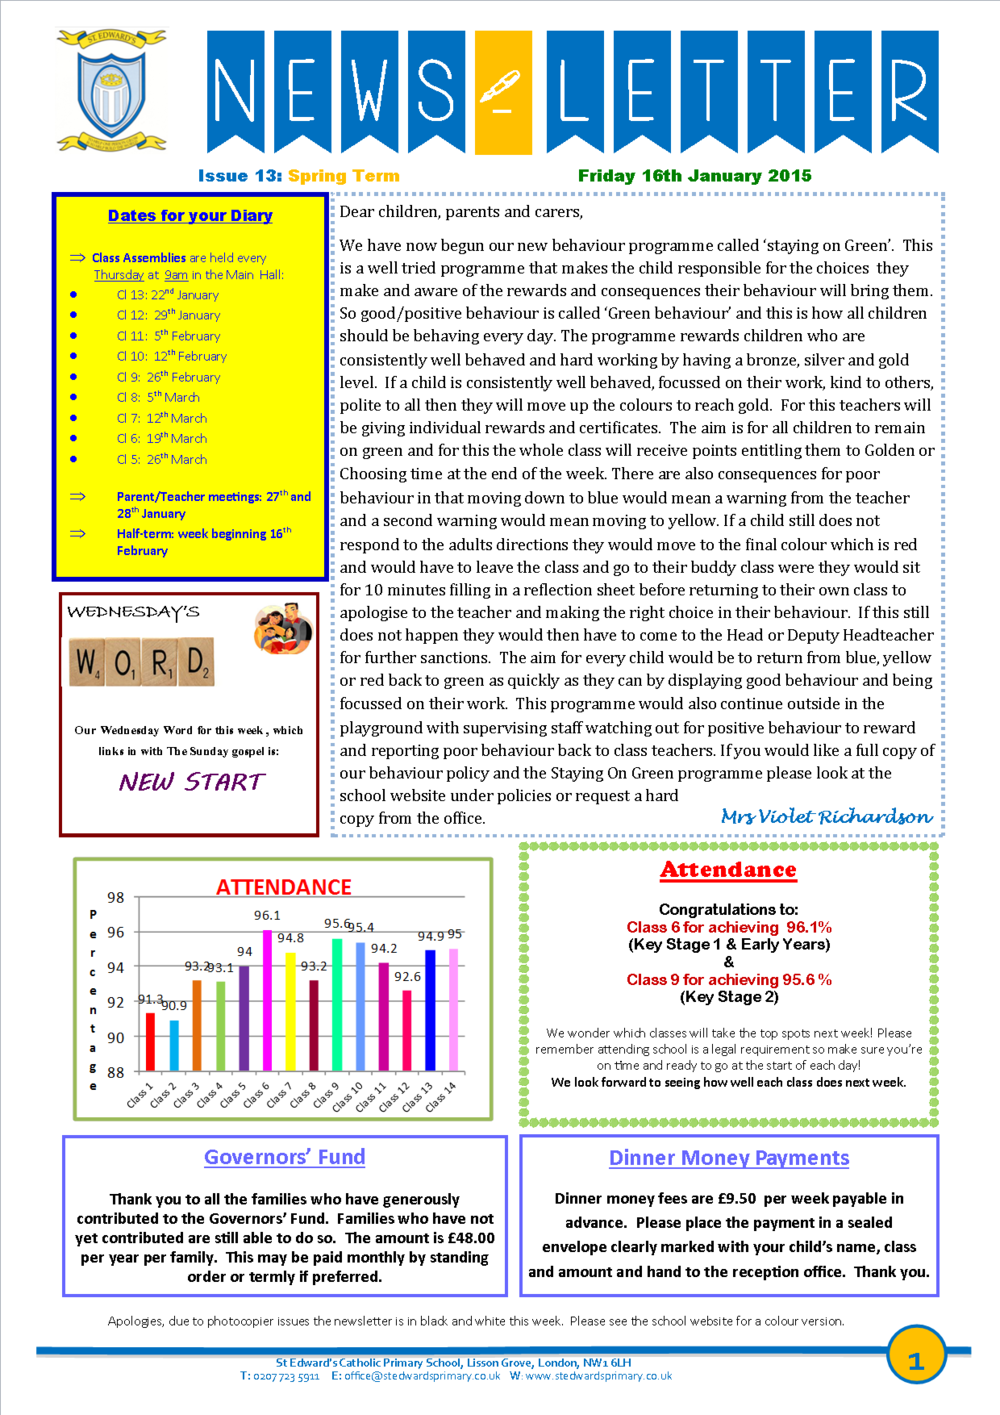 1St Edward's Newsletter Issue 15 16th January 2015.png